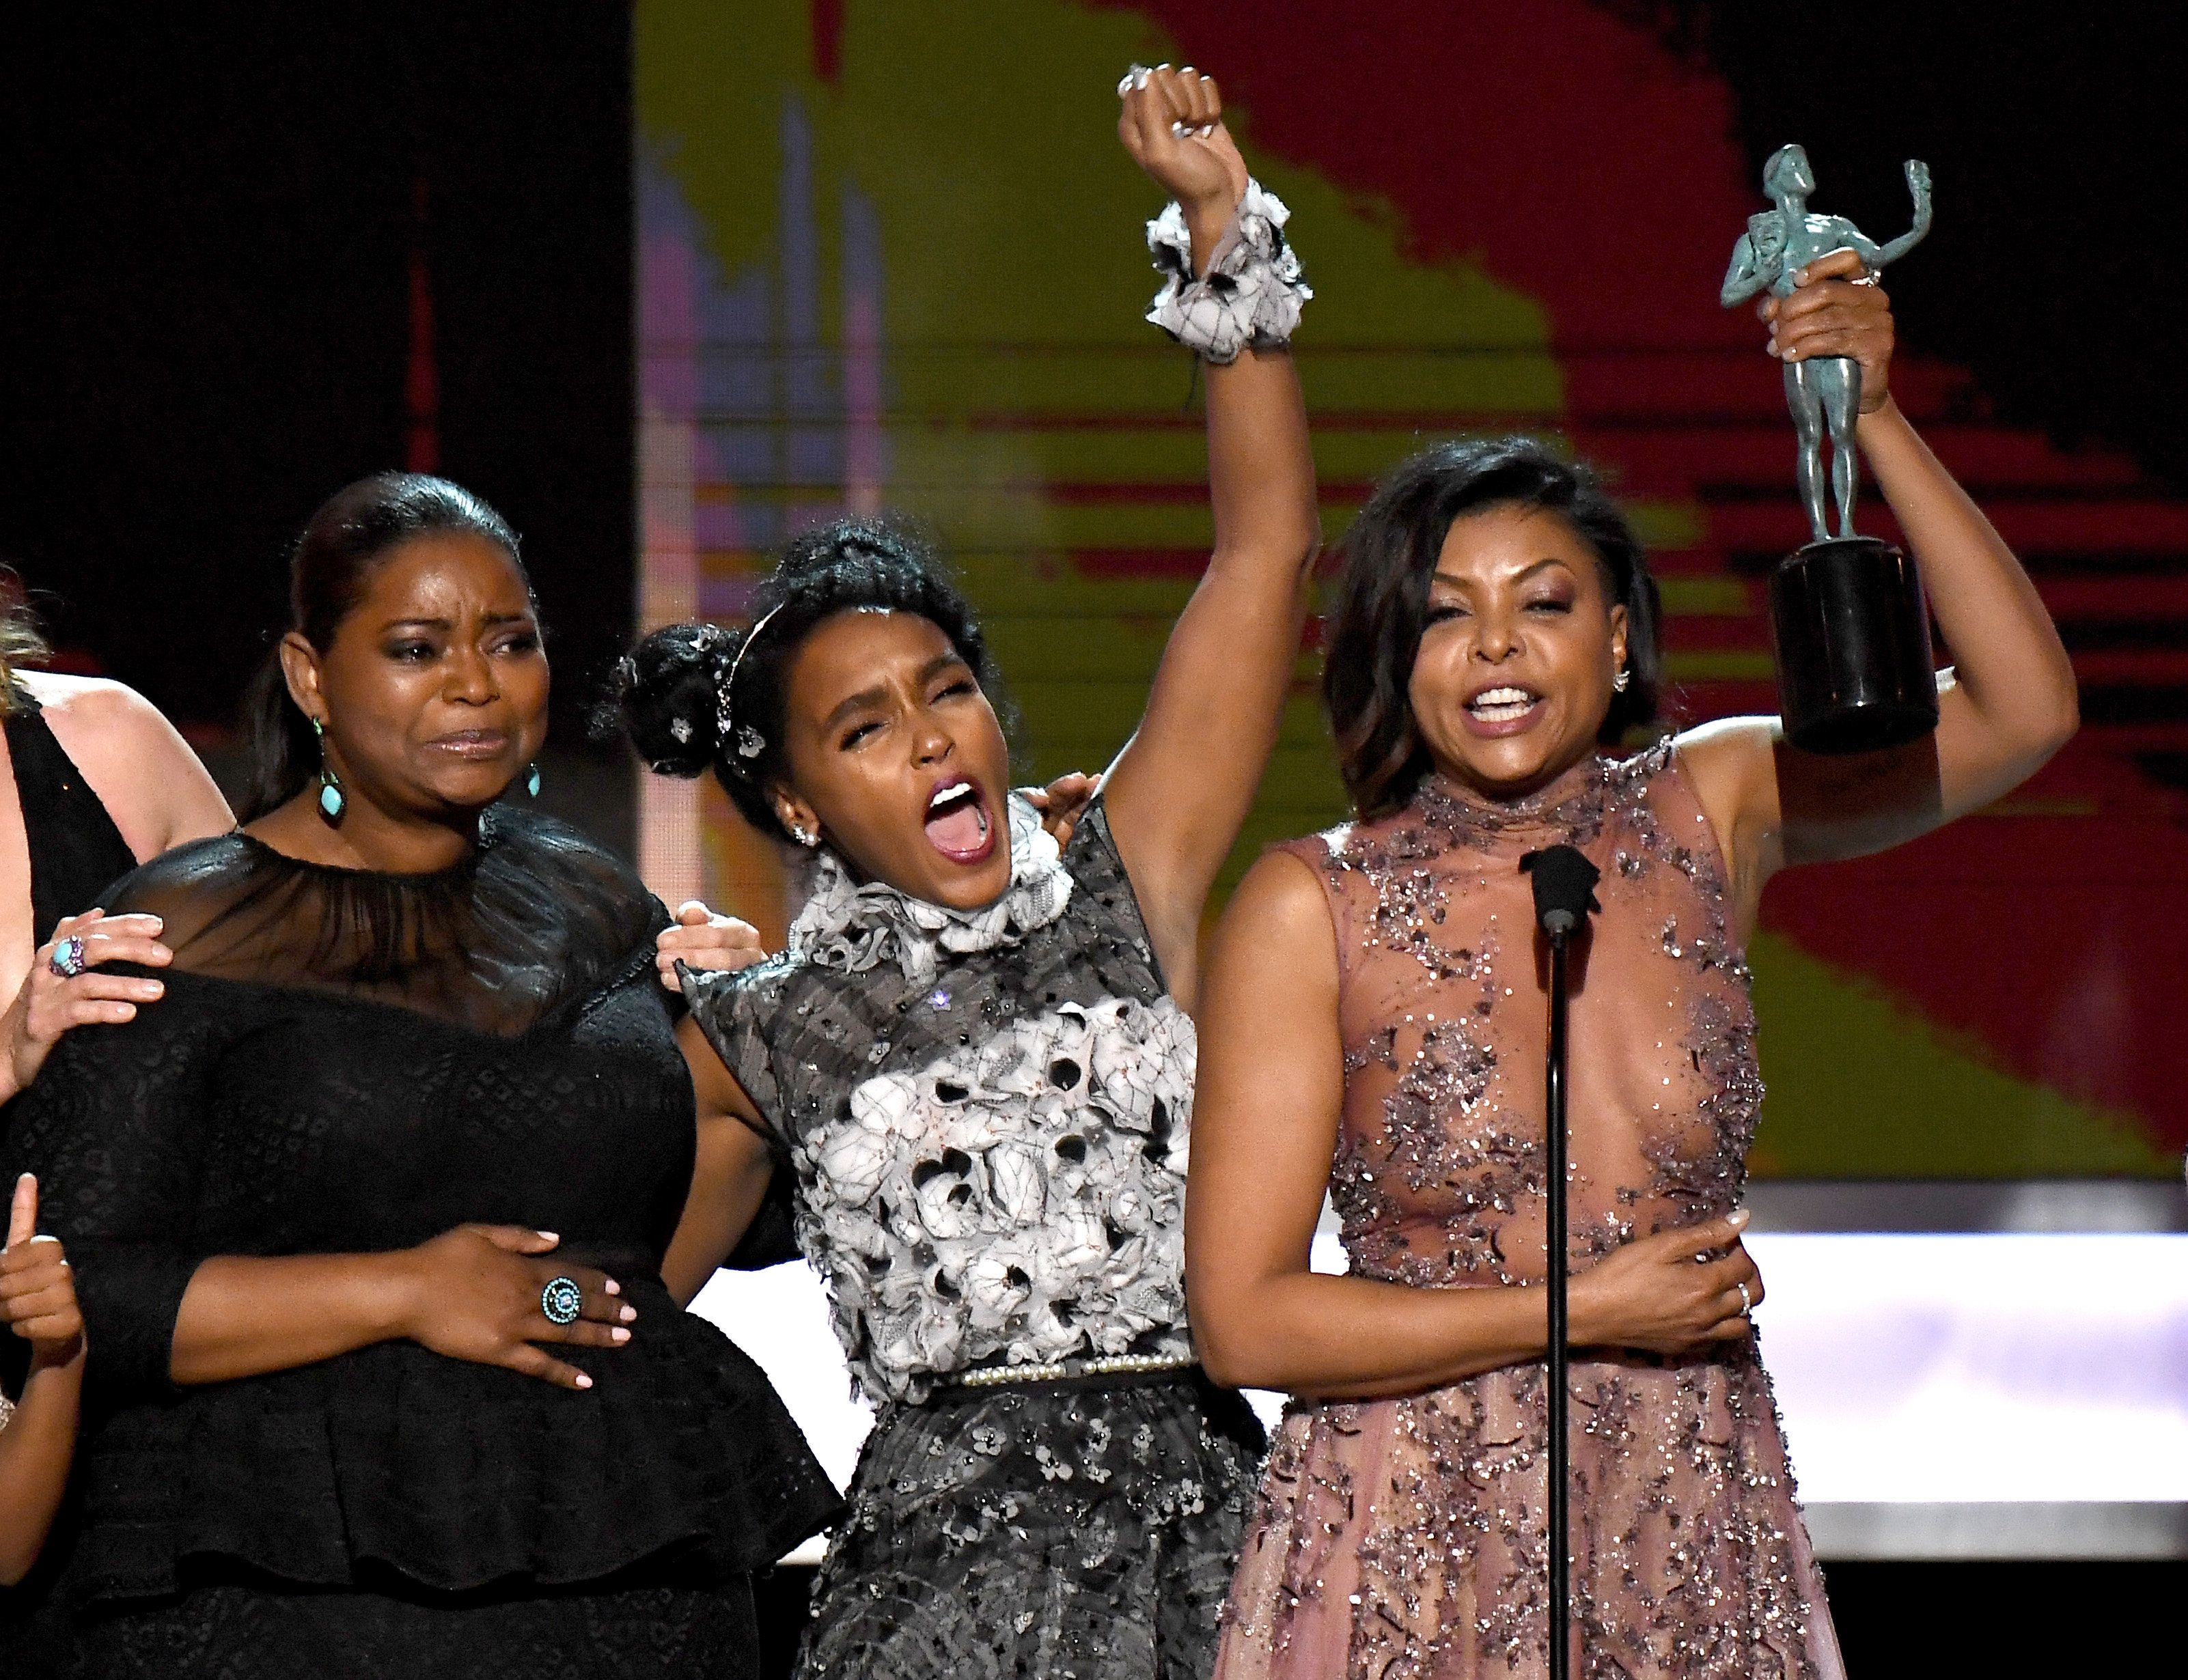 Octavia Spencer, Janelle Monáe, and Taraji P. Henson accept the SAG Award for Outstanding Performance by a Cast i